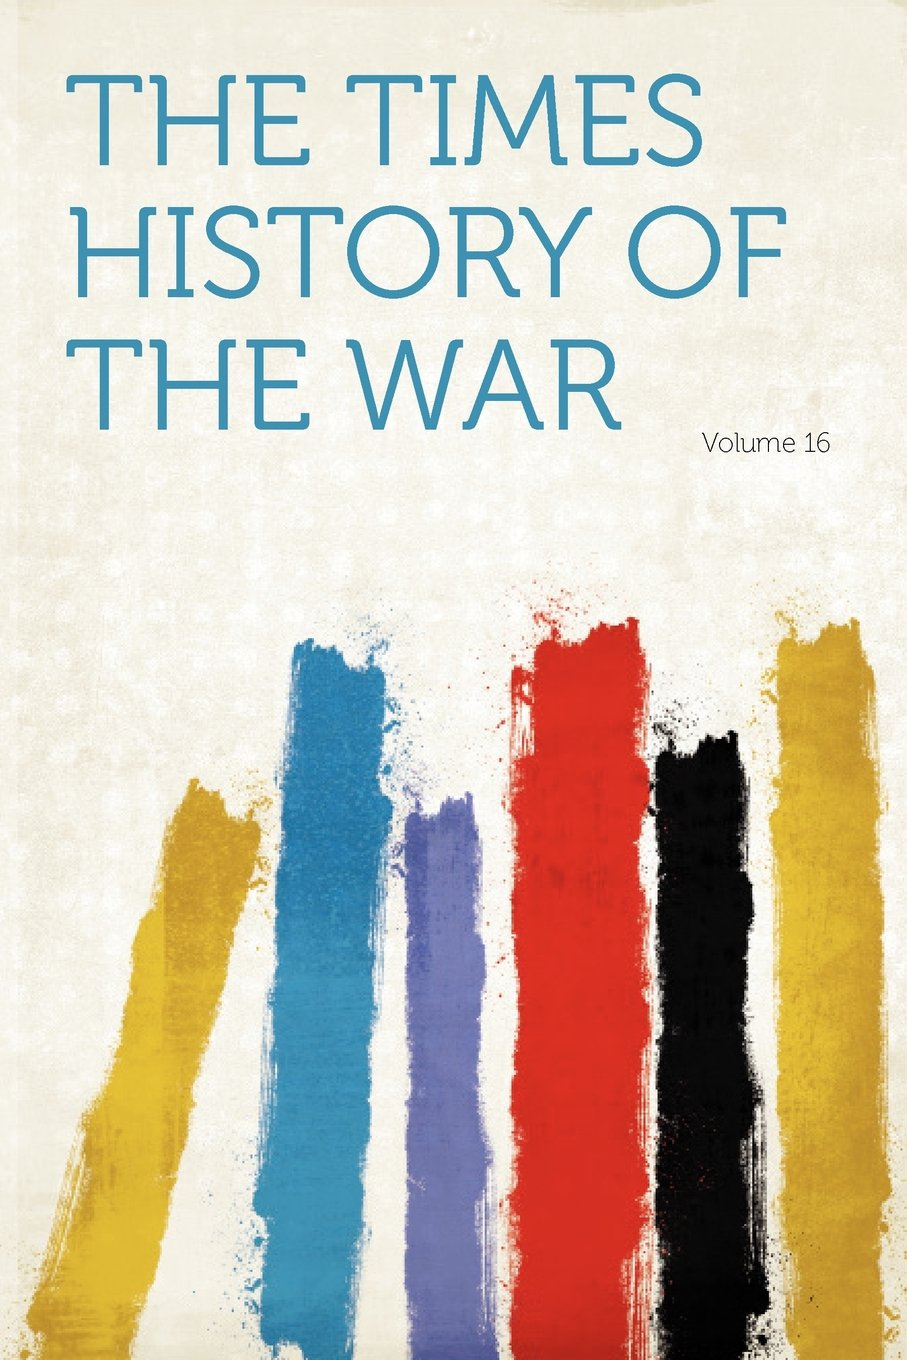 The Times History of the War Volume 16 pdf